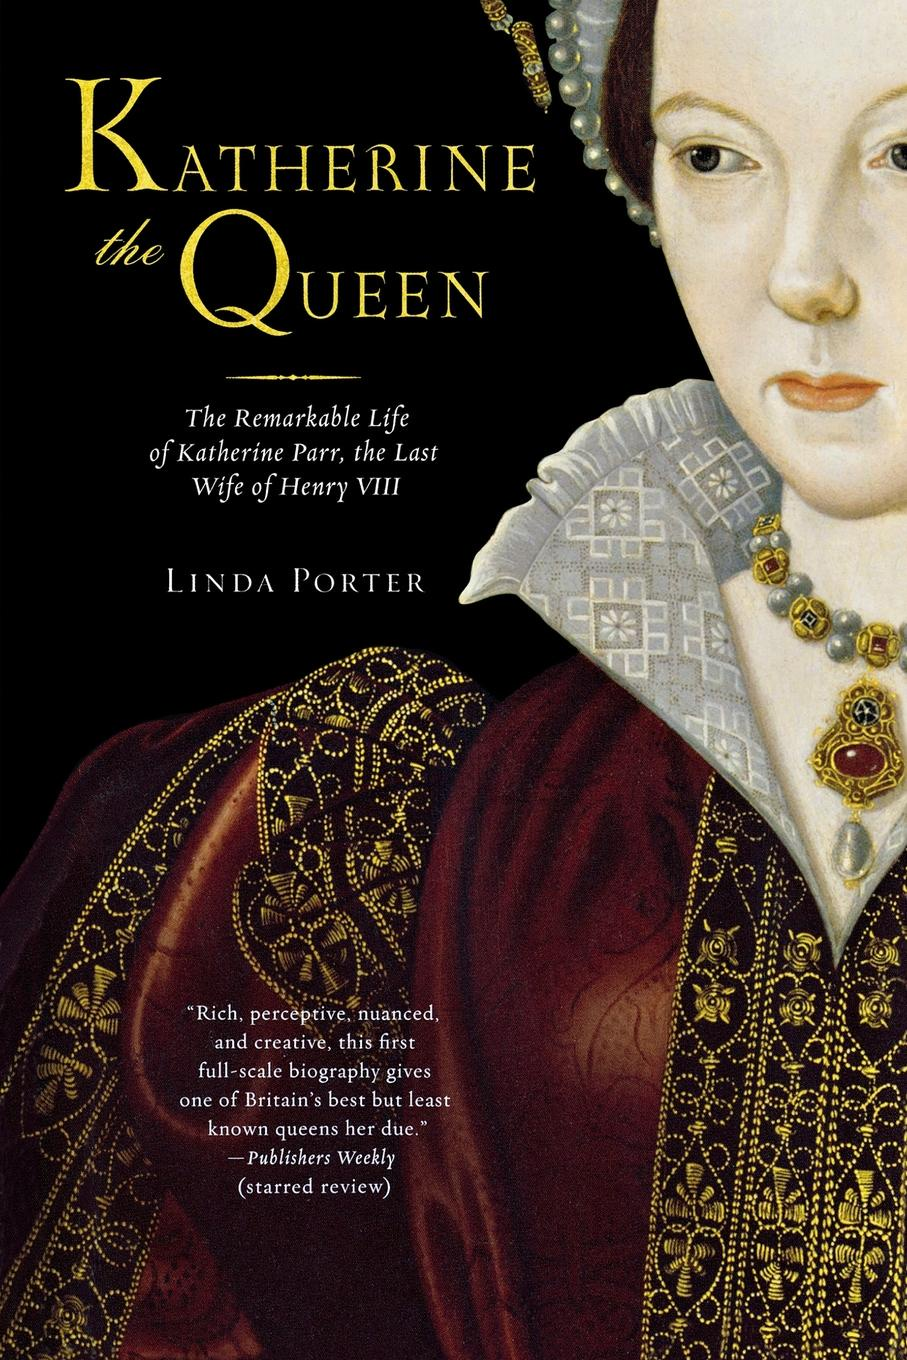 все цены на Linda Porter Katherine the Queen. The Remarkable Life of Katherine Parr, the Last Wife of Henry VIII онлайн